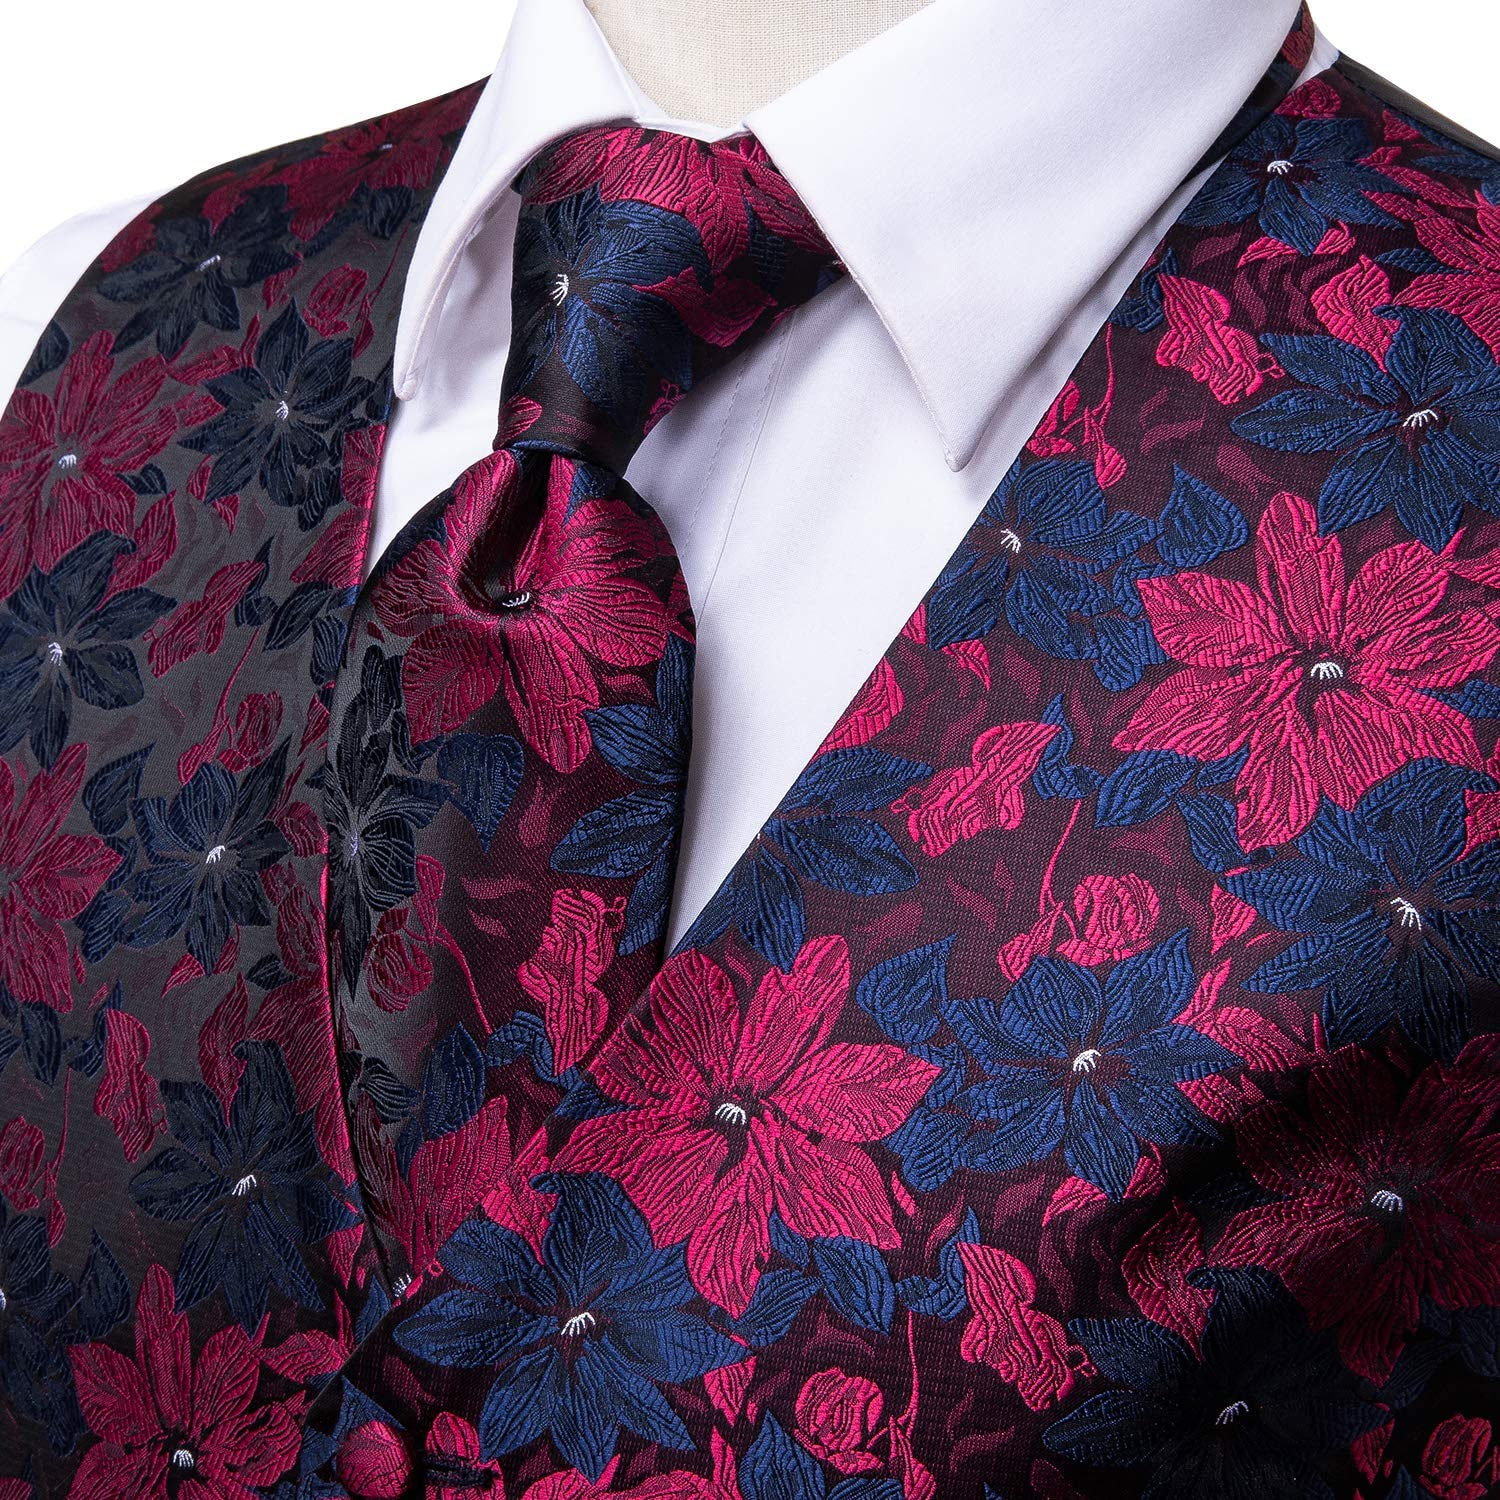 Dubulle Mens Paisley Tie and Vest Set with Pocket Square Cufflinks Waistcoat Suit for Tuxedo